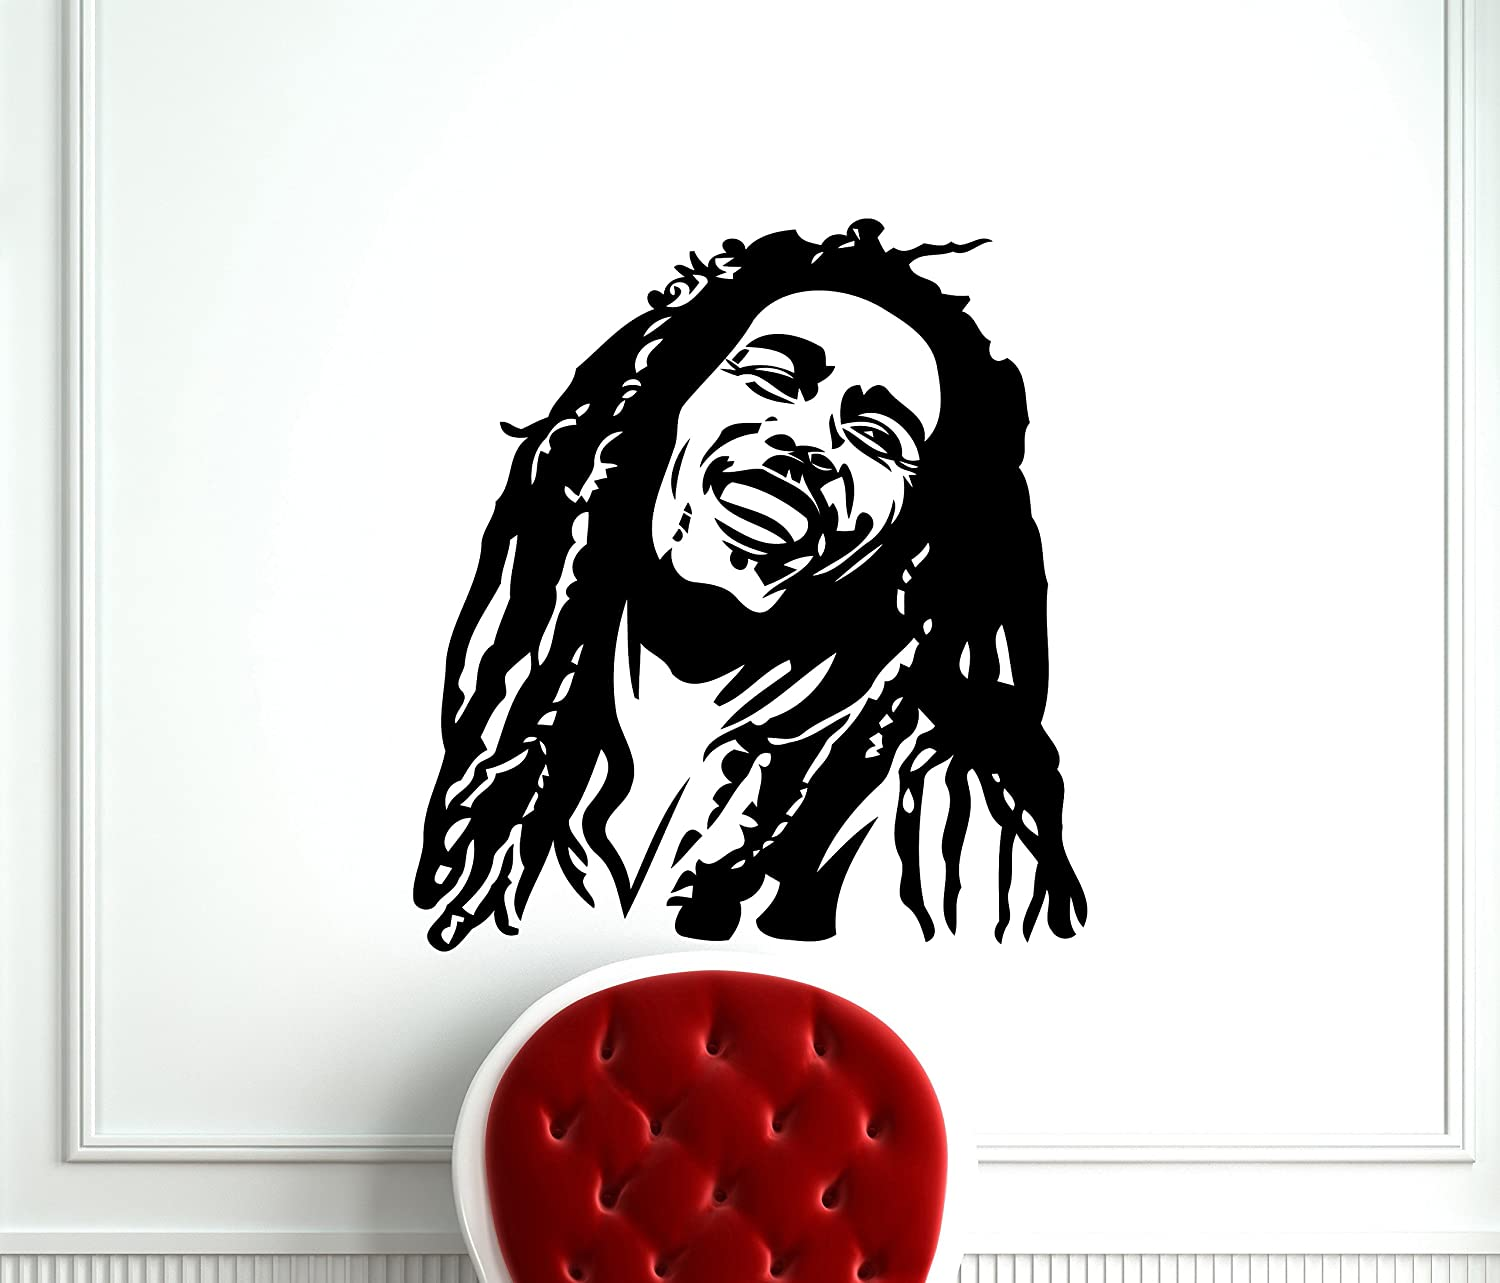 Amazon com bob marley wall decal reggae music vinyl sticker room interior decoration home kids room art design removable waterproof mural 226s home